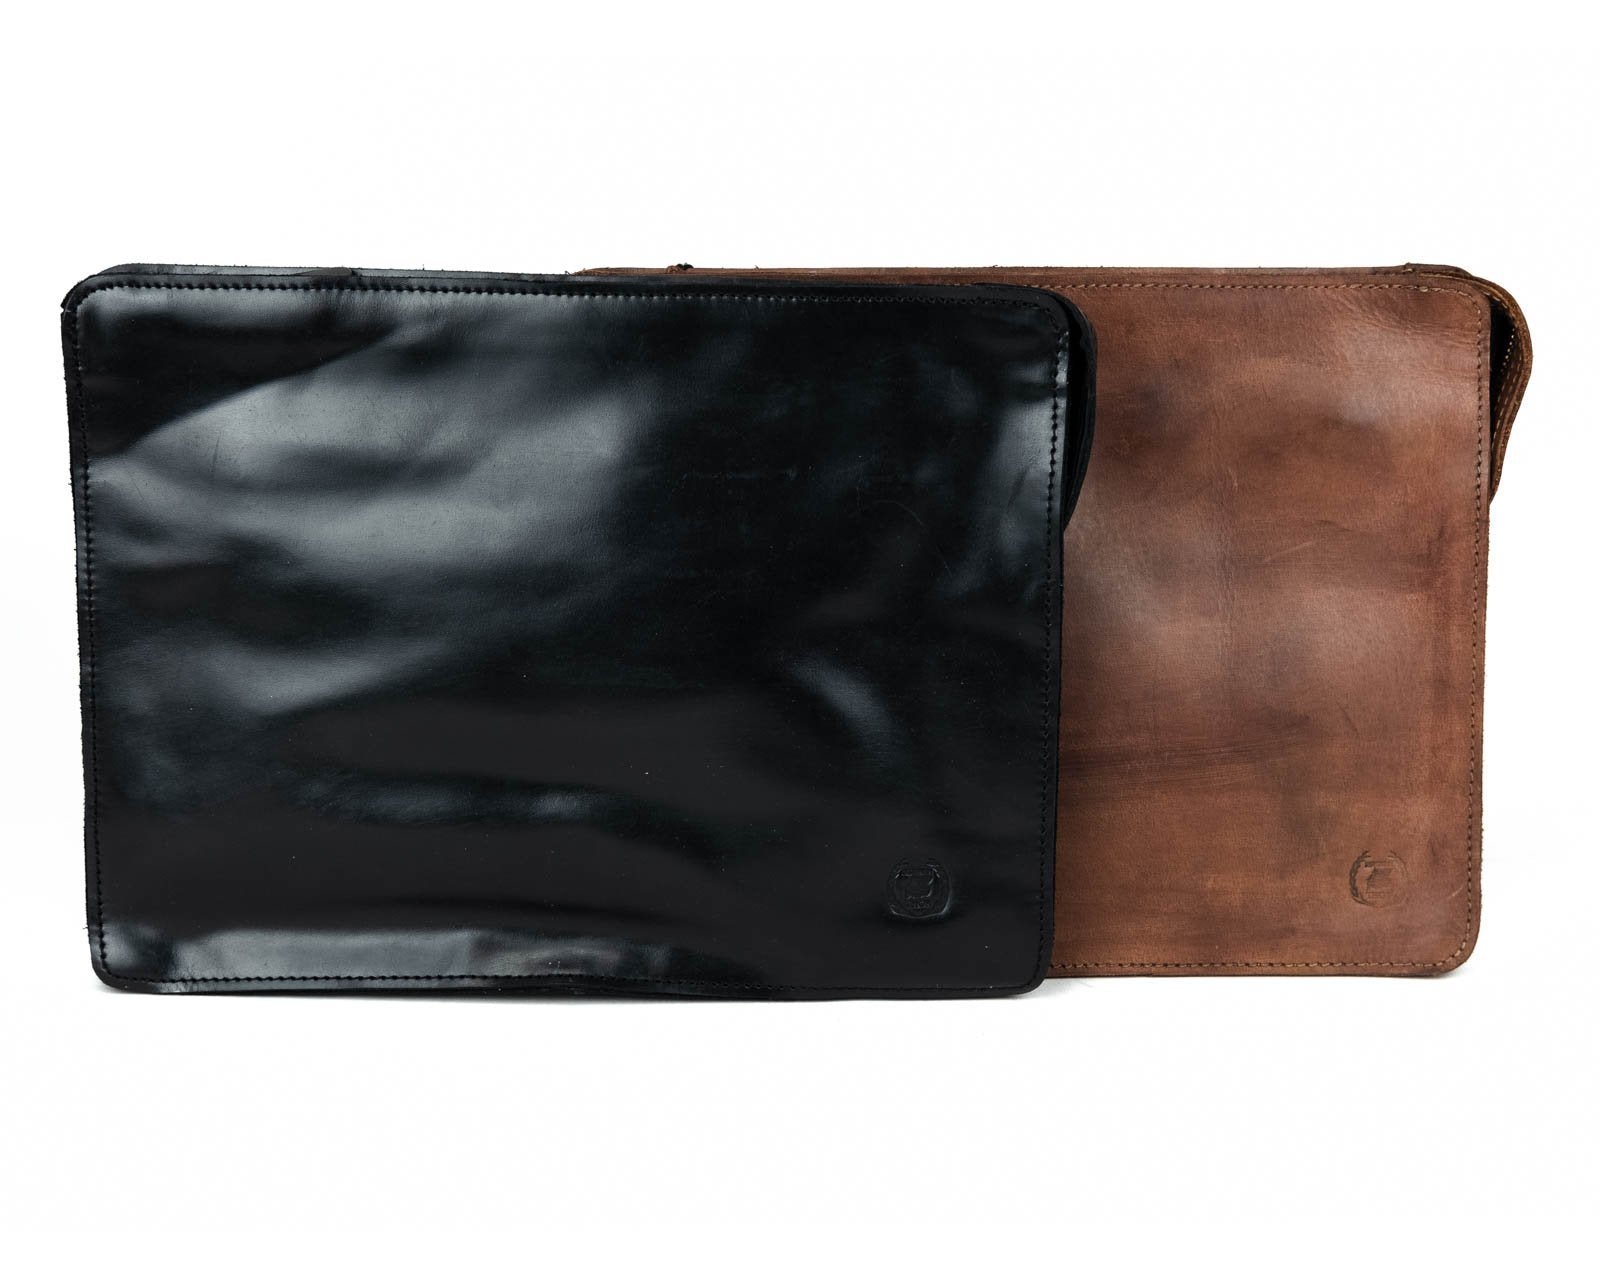 The Morgan iPad Case